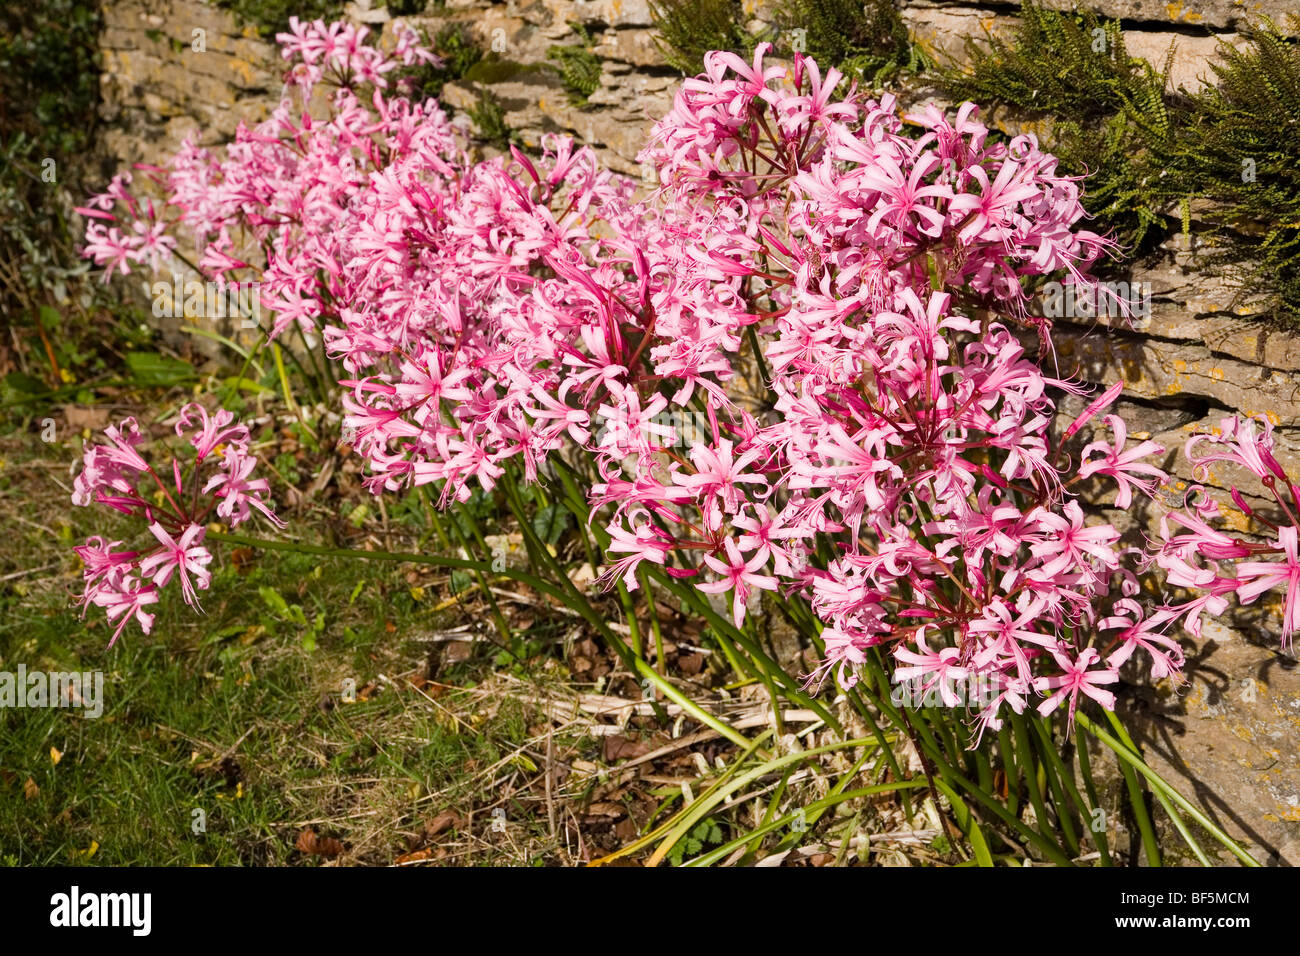 Nerine Lilies (sometimes called Guernsey Lilies) growing beside a stone wall in the Cotswolds - Stock Image